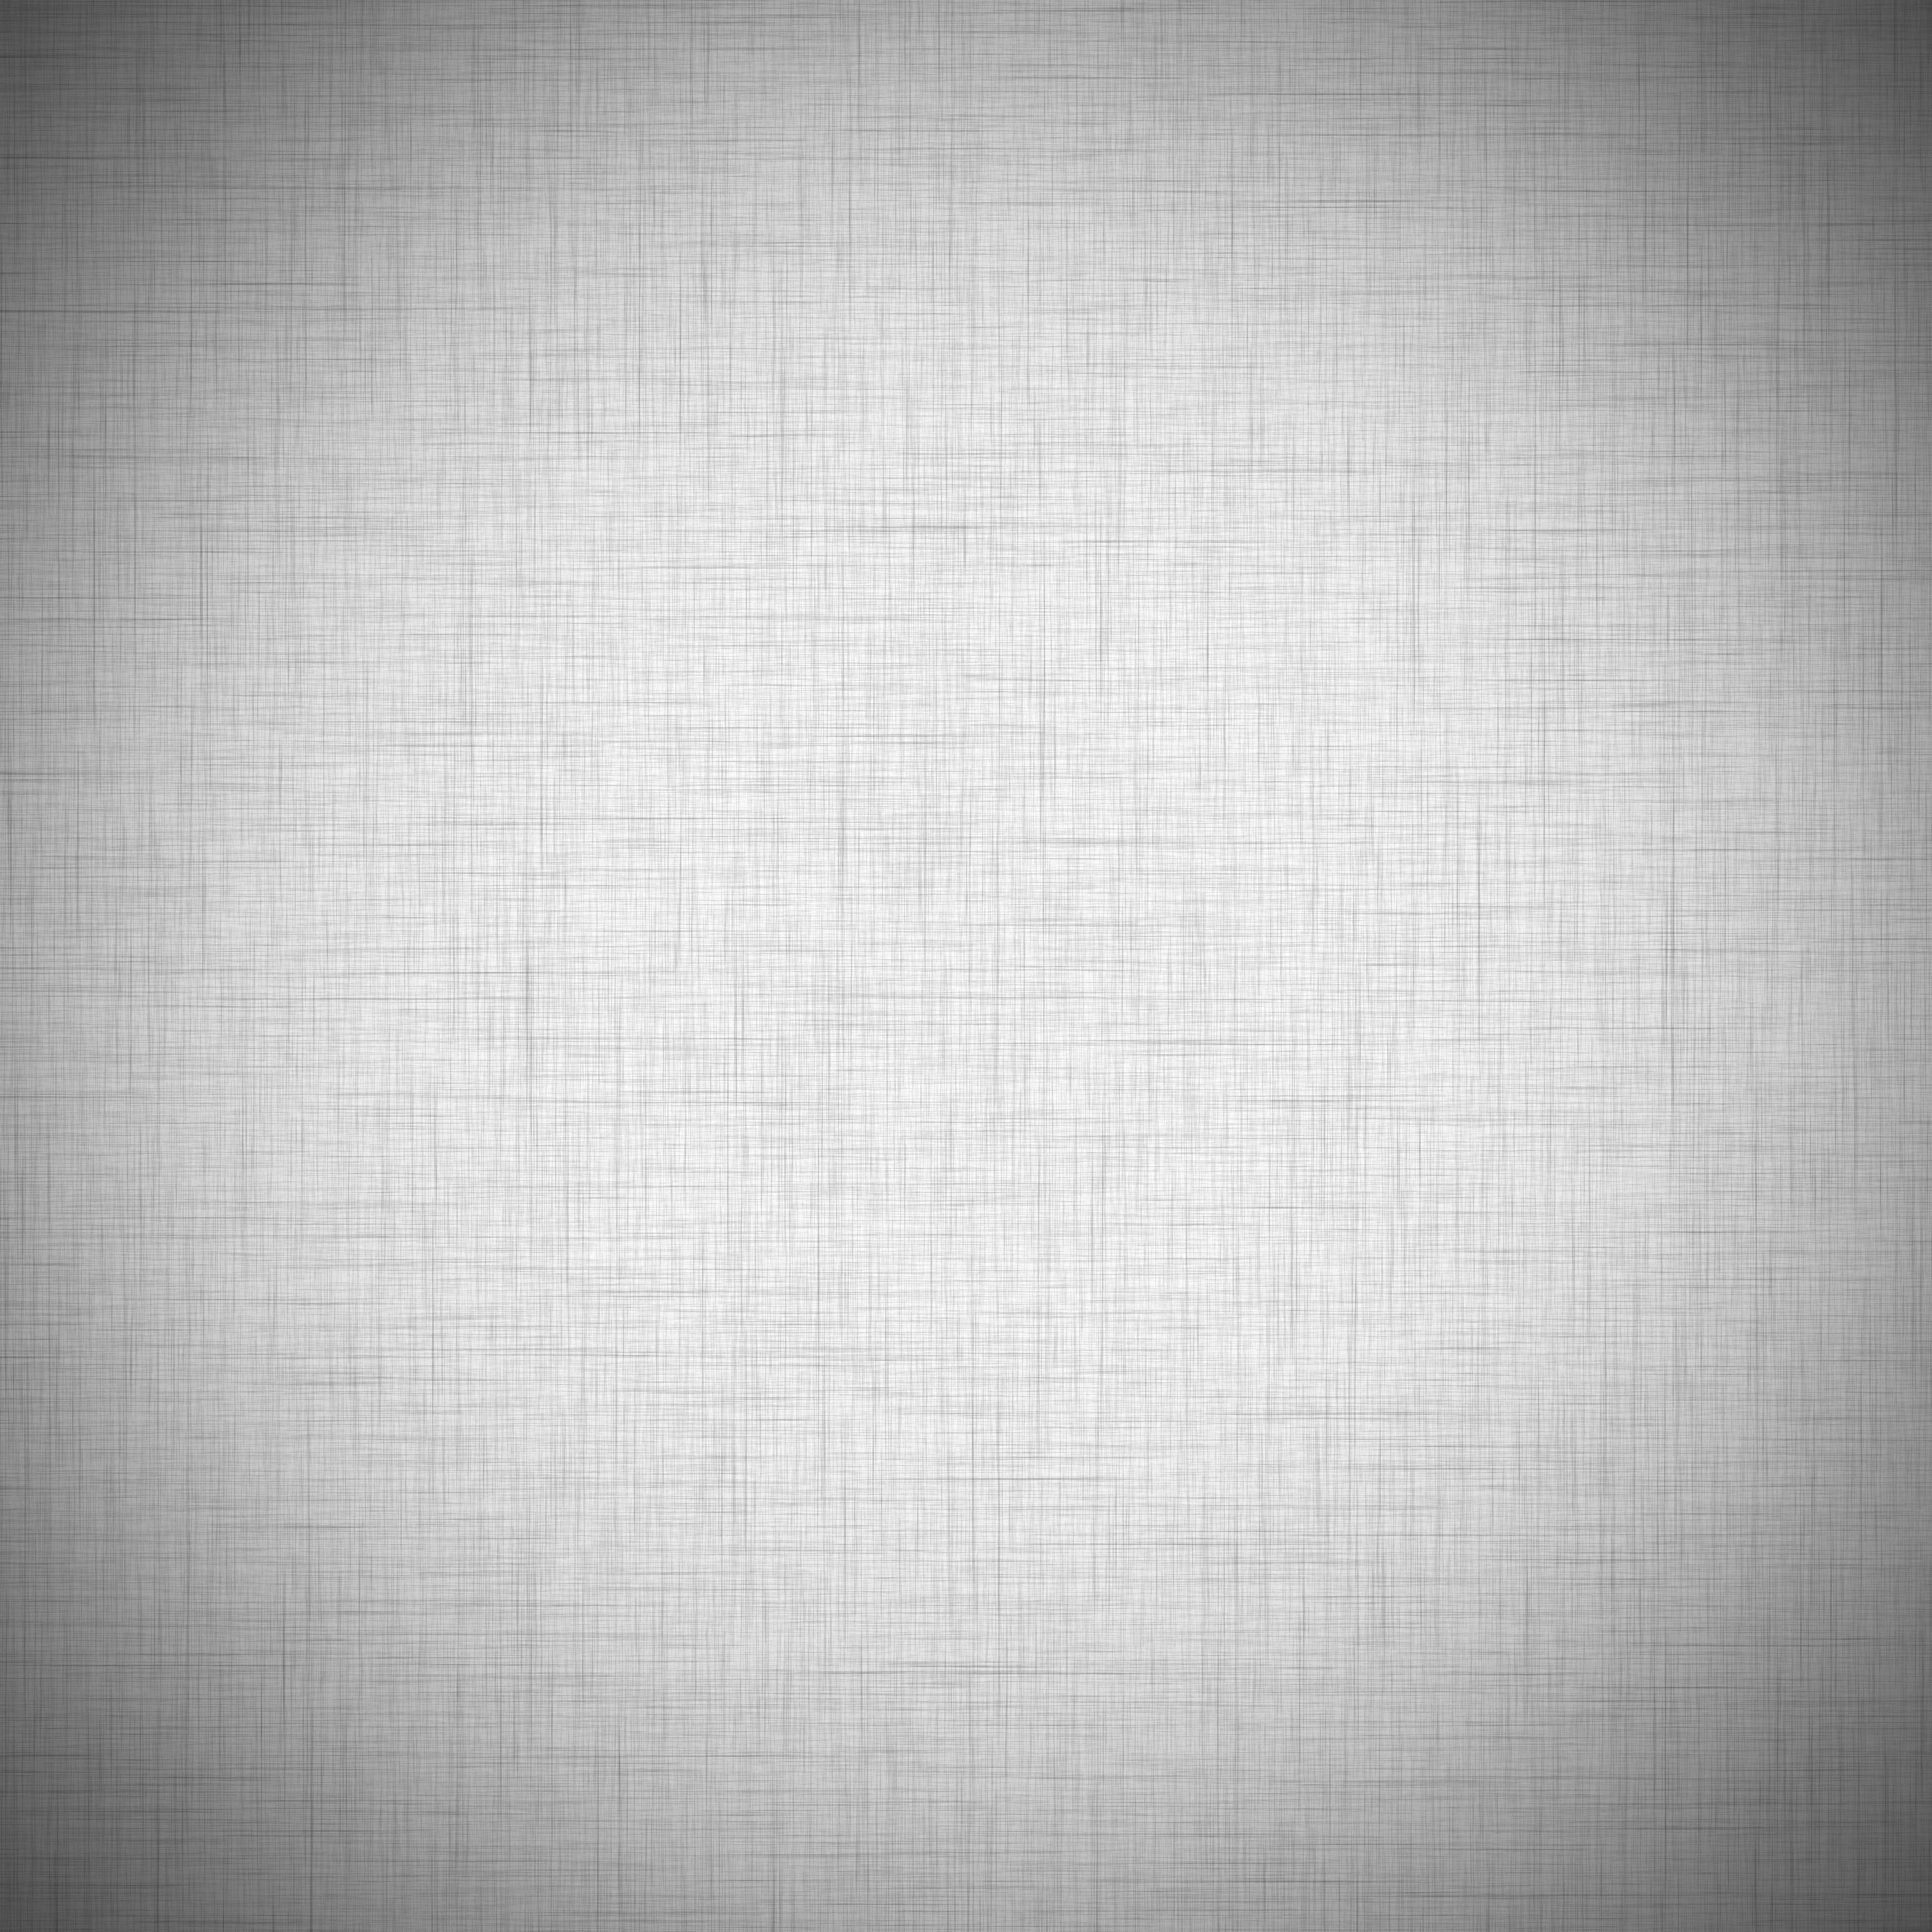 Pictures light white and gray flowers great for background stationary 3000x3000